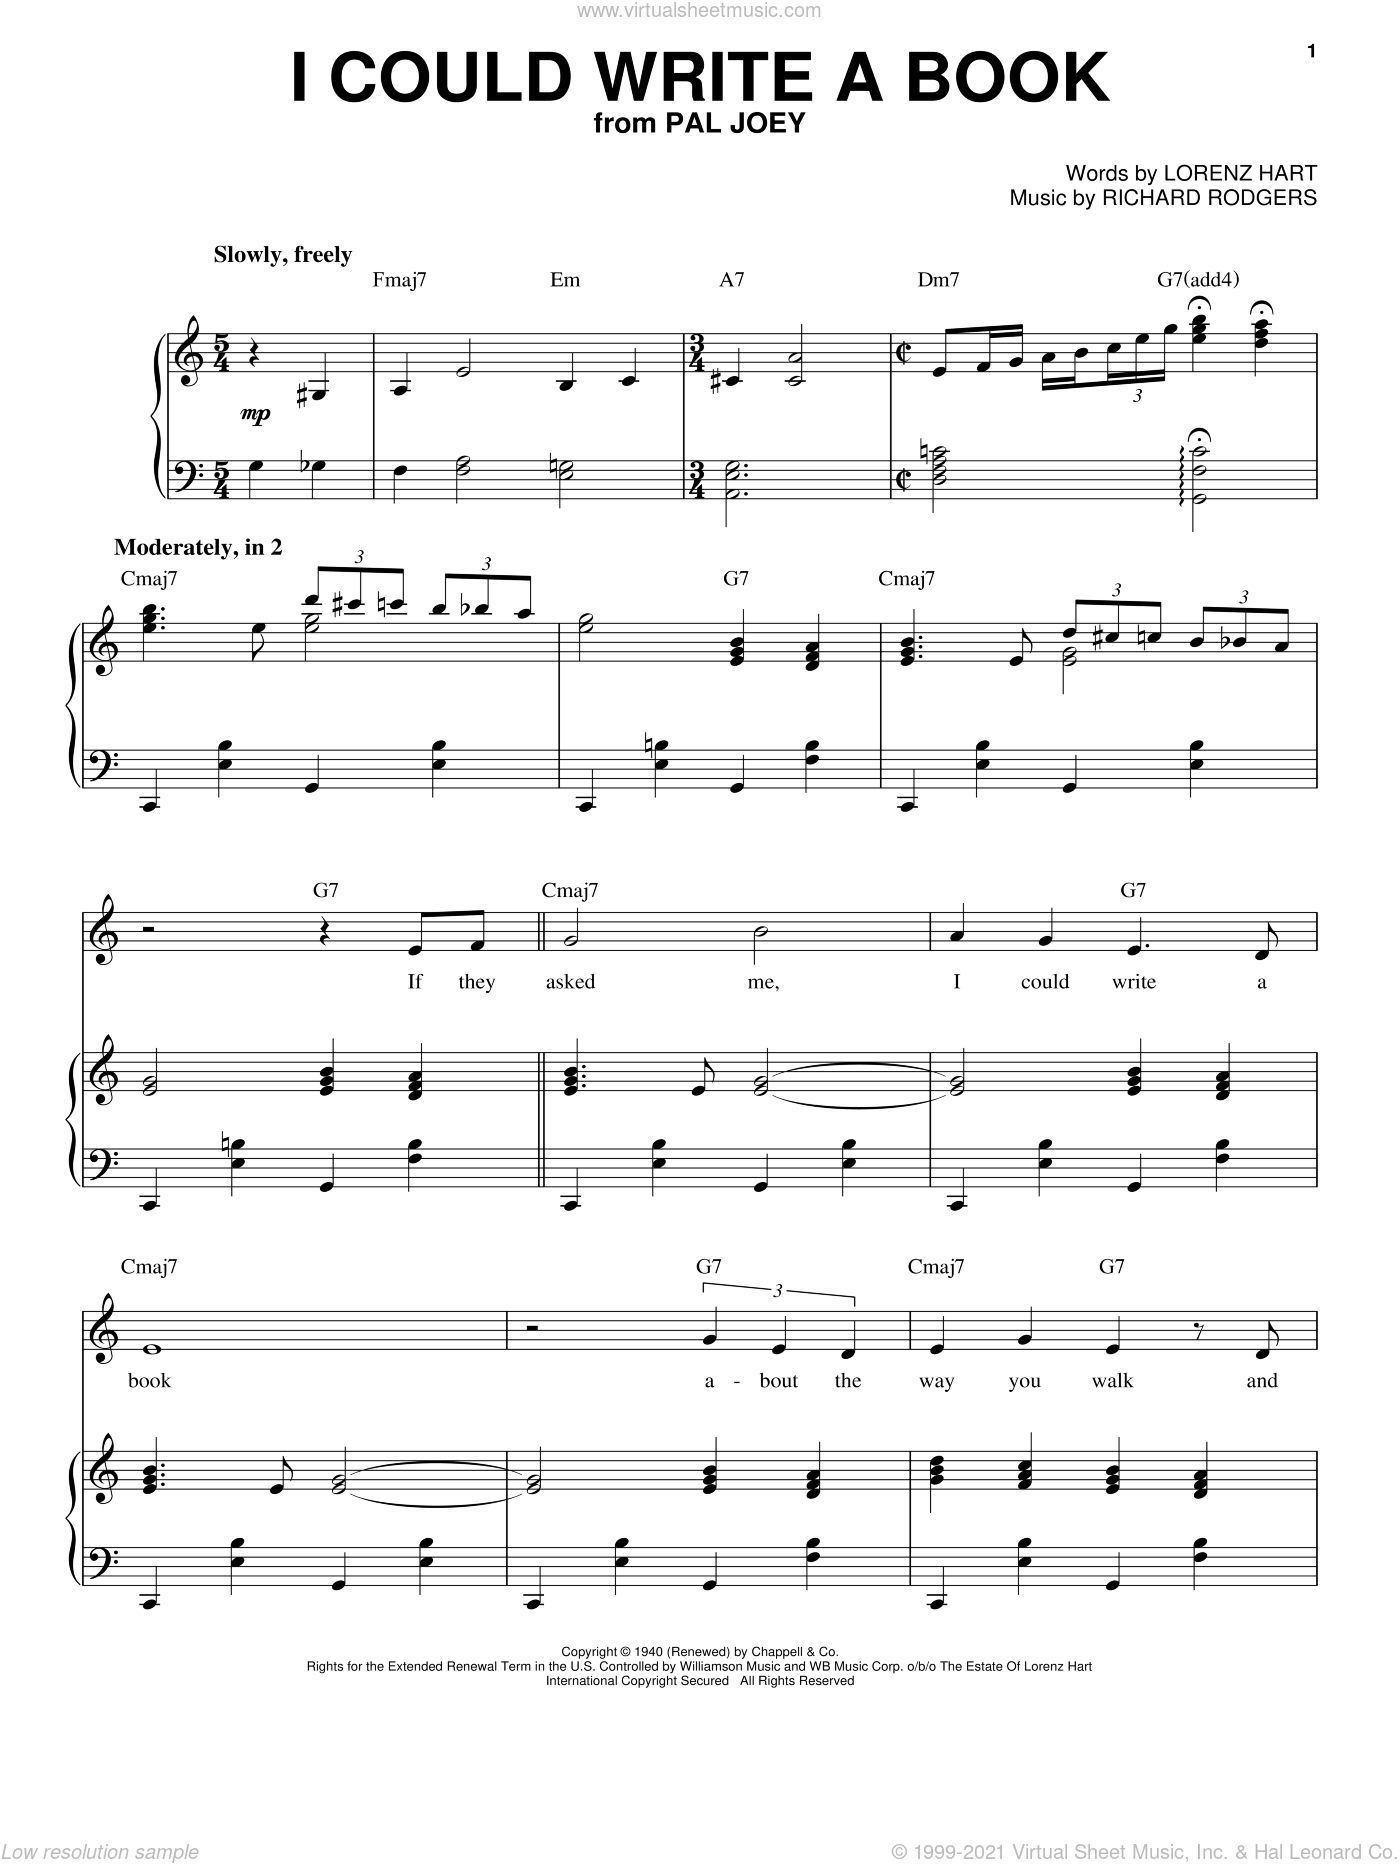 I Could Write A Book sheet music for voice and piano by Richard Rodgers, Frank Sinatra, Rodgers & Hart and Lorenz Hart. Score Image Preview.